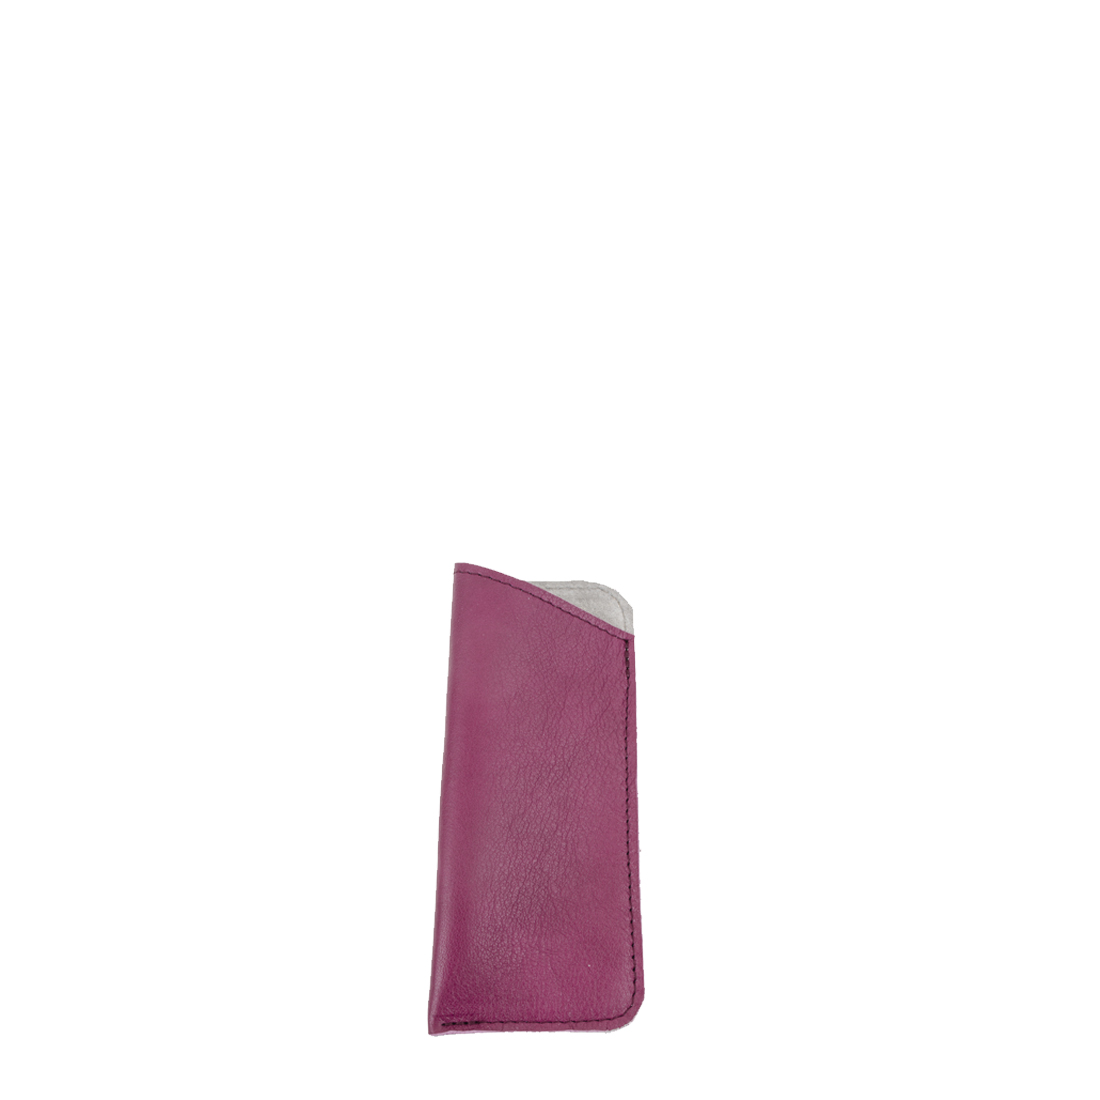 Glasses Case In Magenta